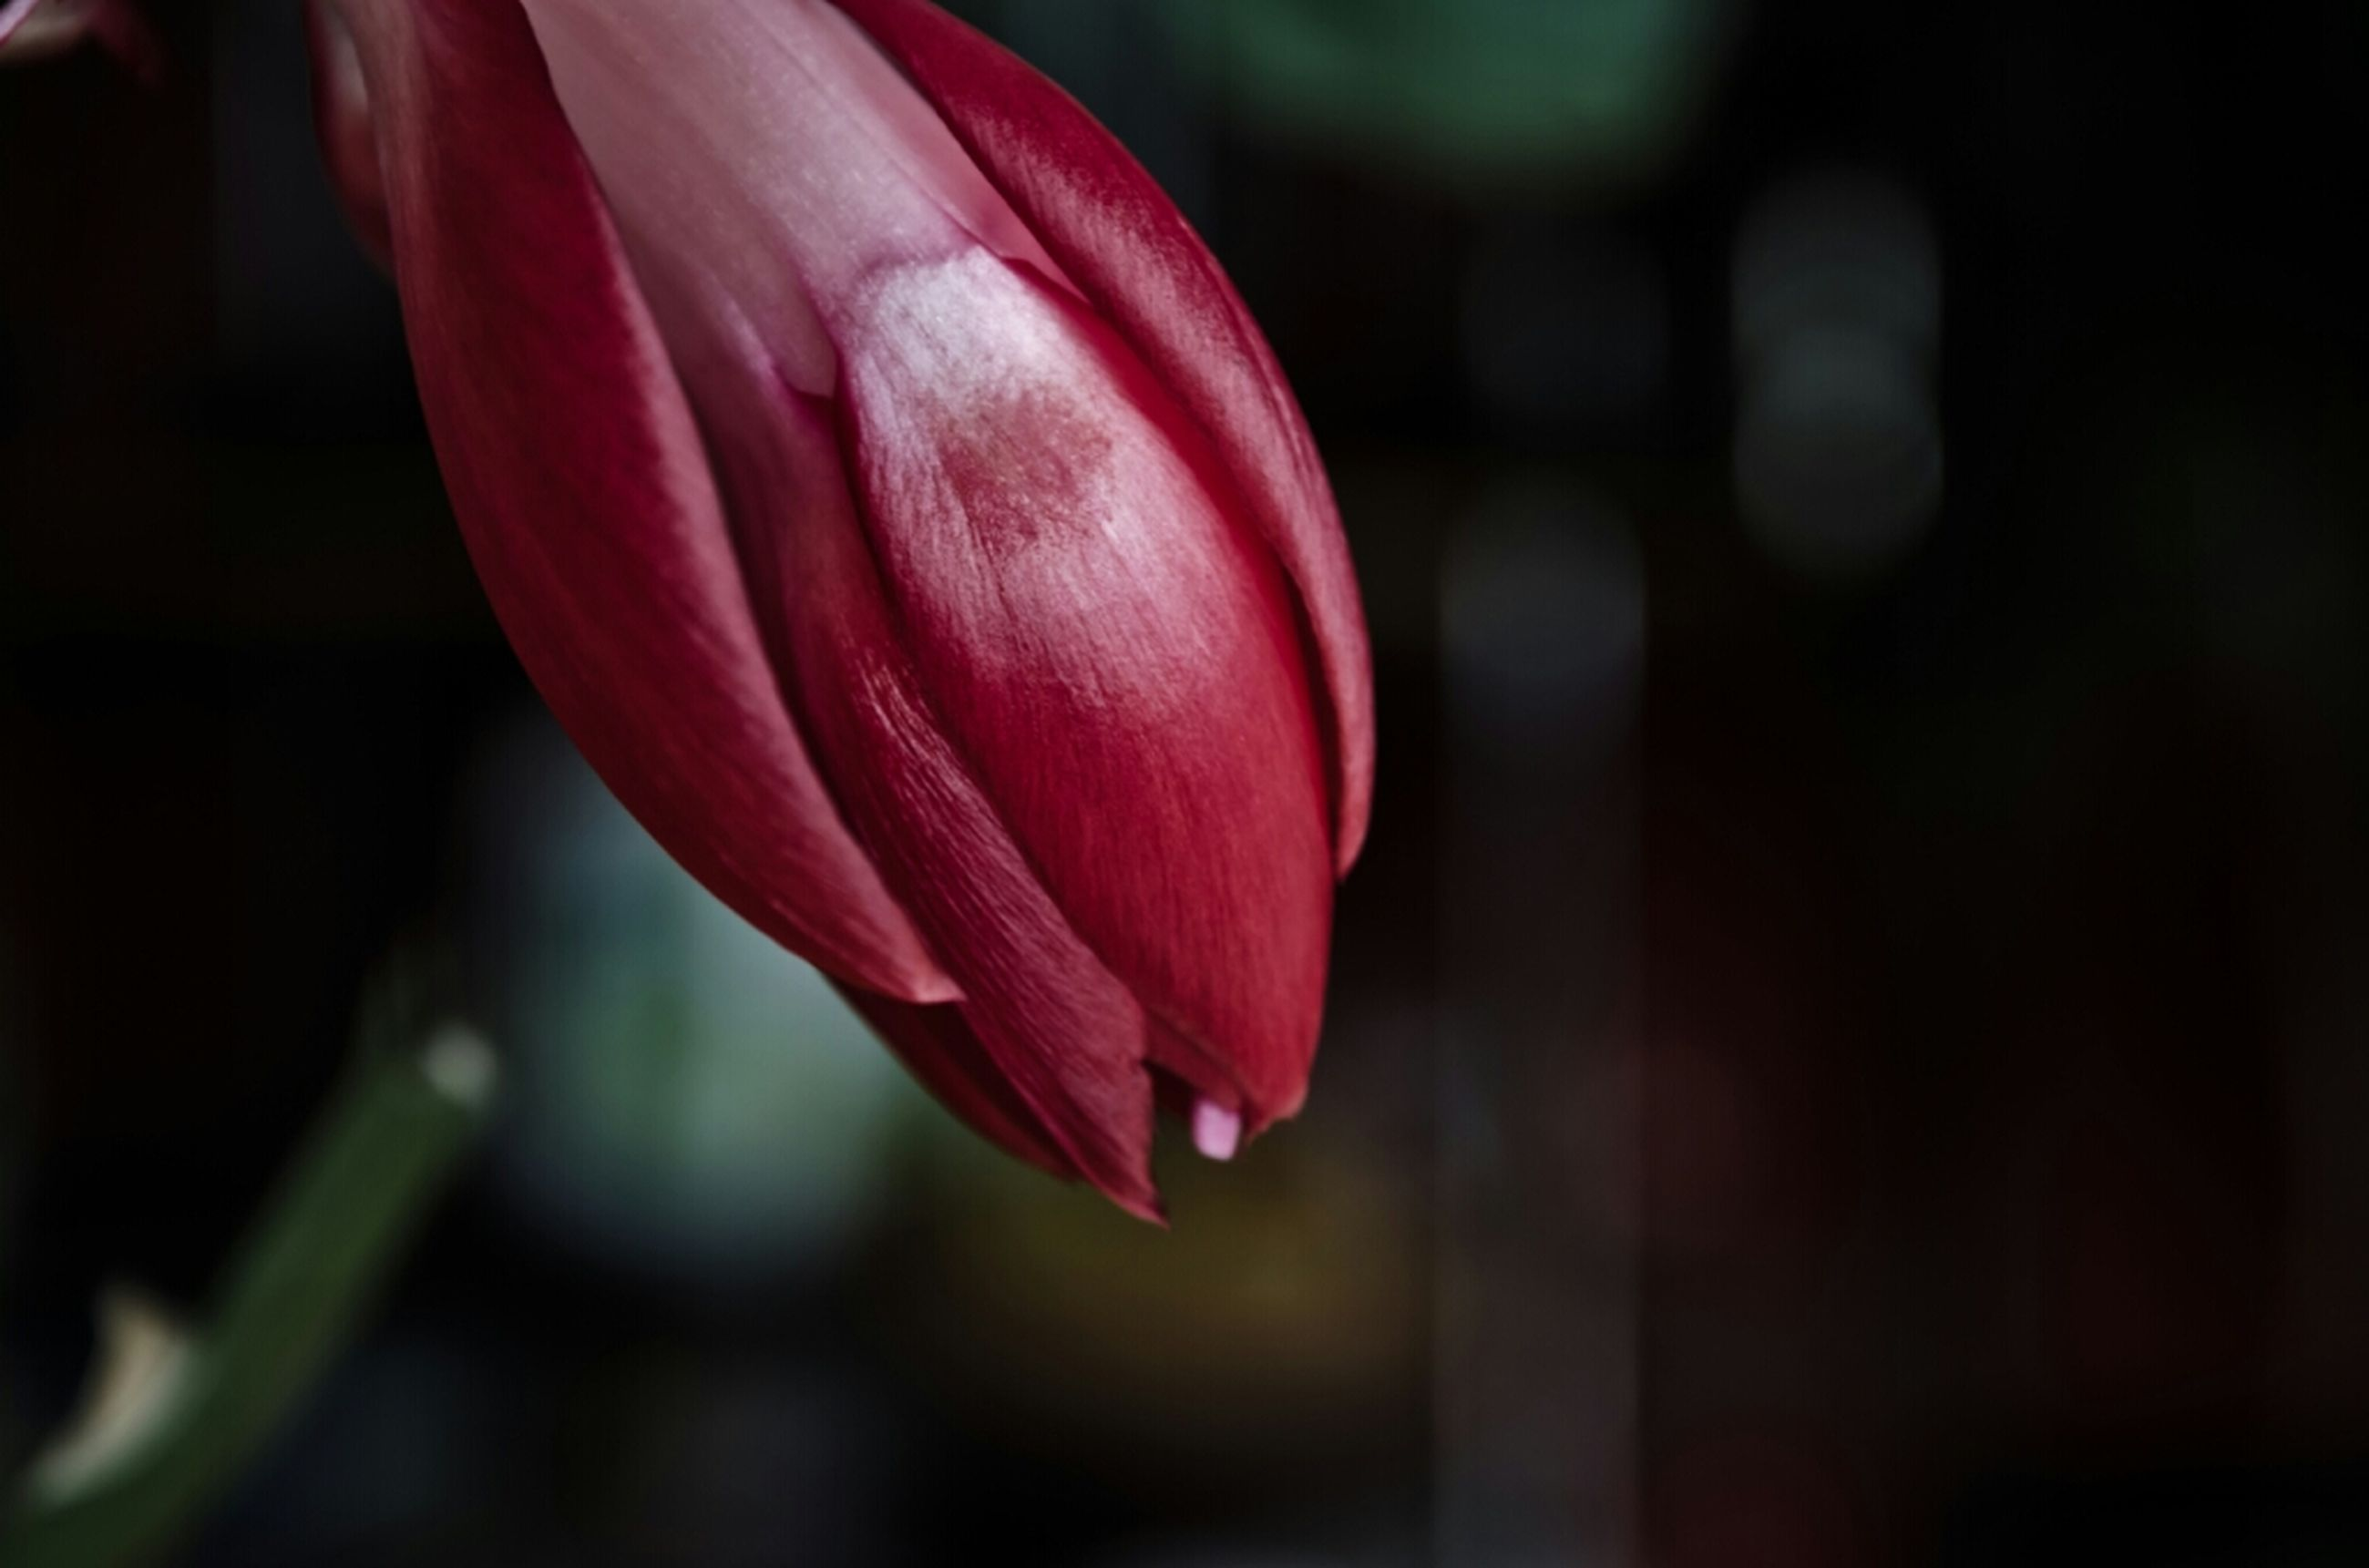 petal, flower, focus on foreground, flower head, fragility, close-up, freshness, red, single flower, selective focus, pink color, beauty in nature, growth, nature, blooming, in bloom, pink, day, outdoors, no people